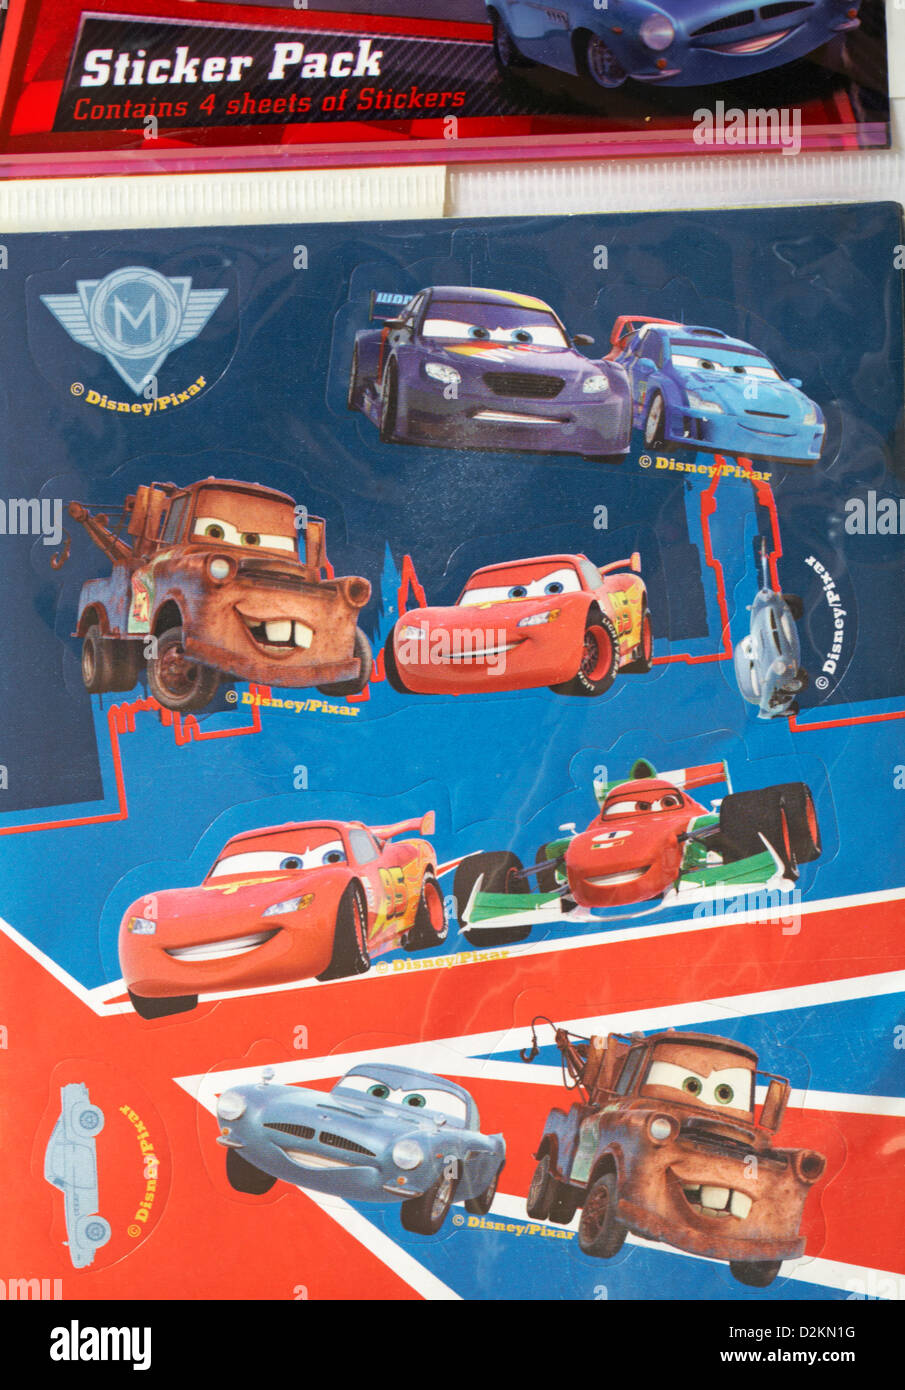 Disney Pixar Sheet Of Stickers For Cars